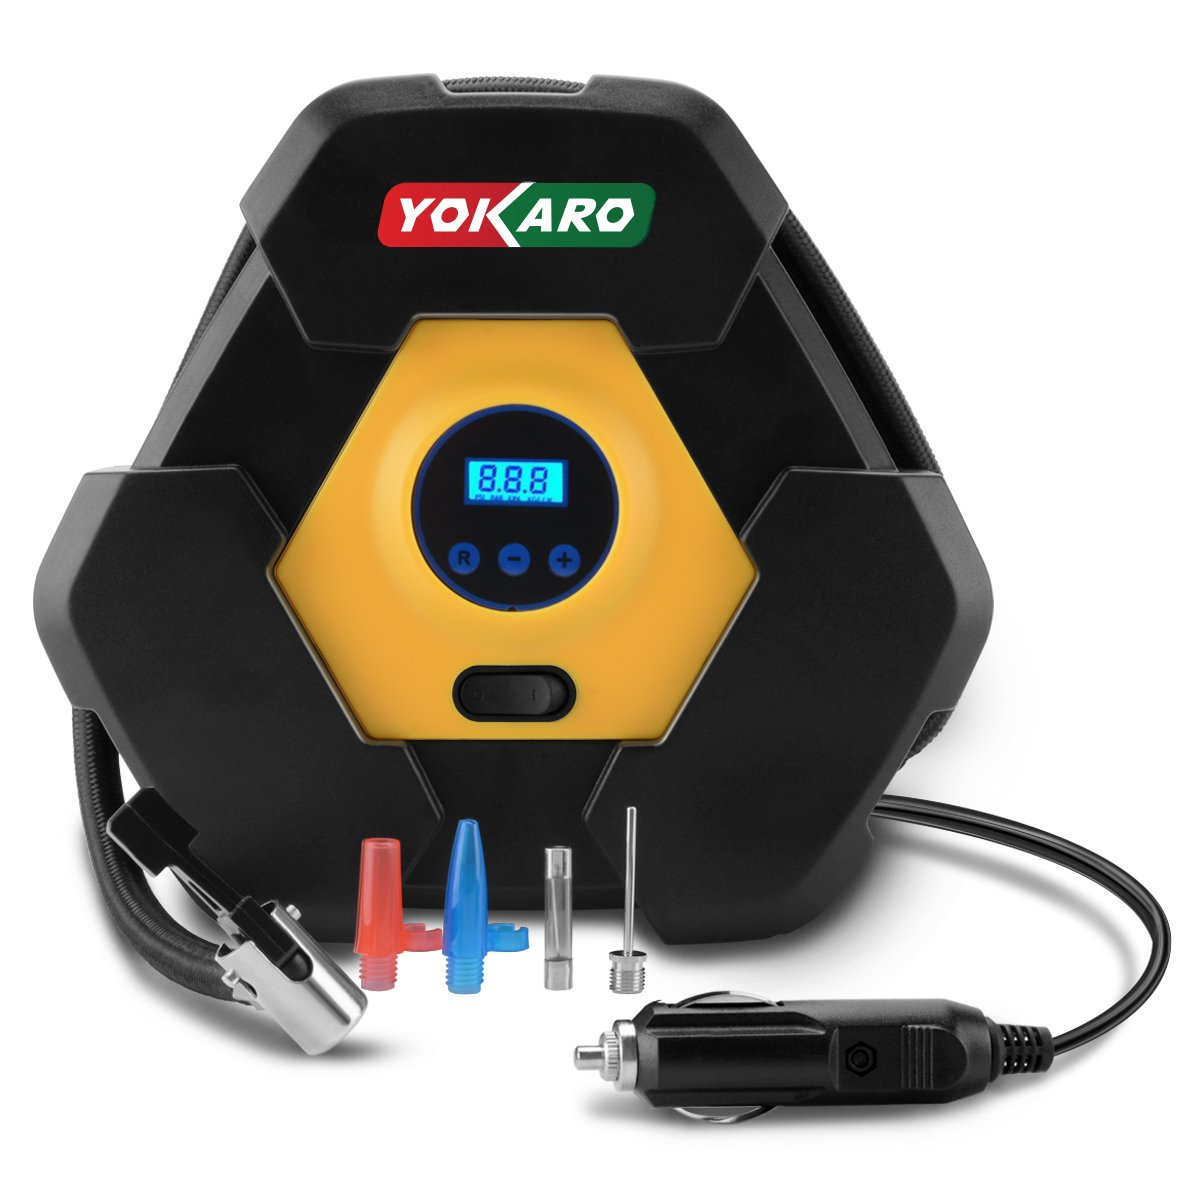 YOKARO Portable Digital Tire Inflator 12V 150PSI Auto Shut off Air Compressor Pump with 3 High-air Flow Nozzles & Adapters